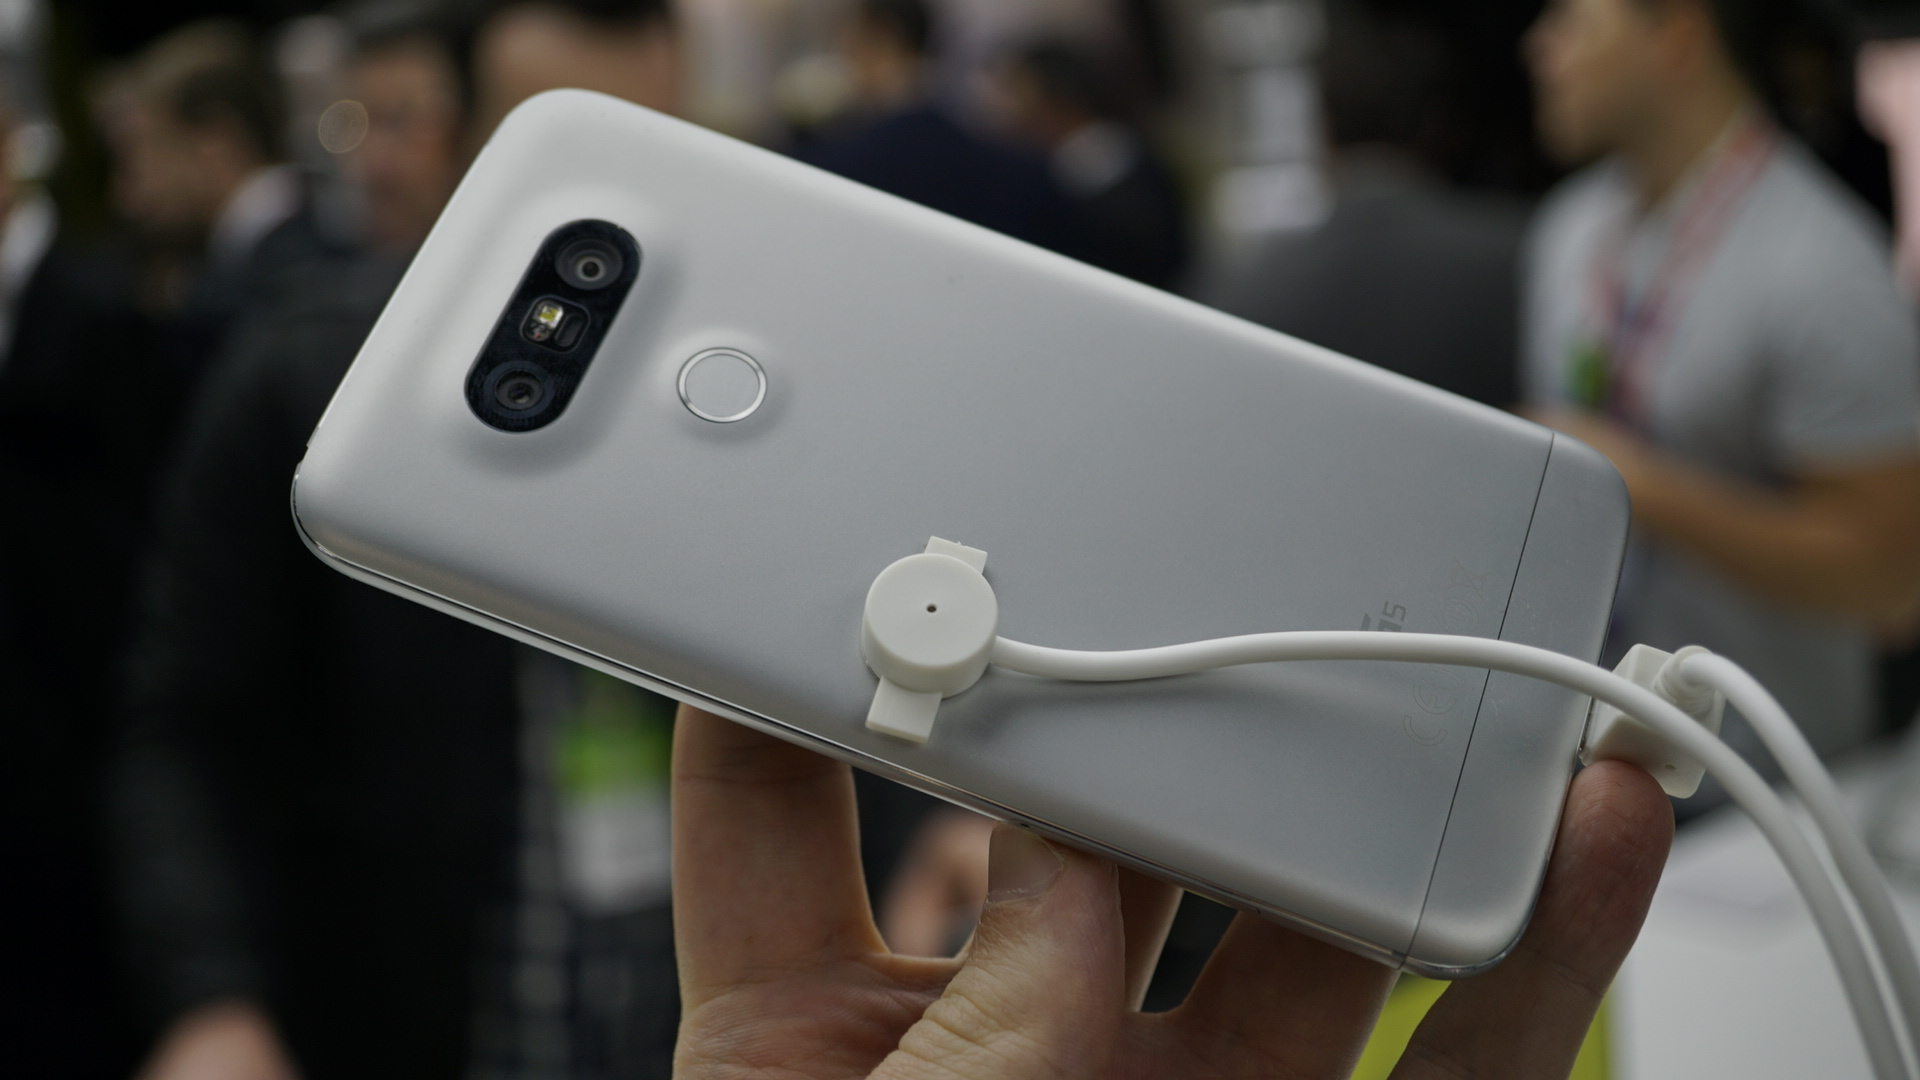 lg-g5-mwc-hands-on-set-2-12